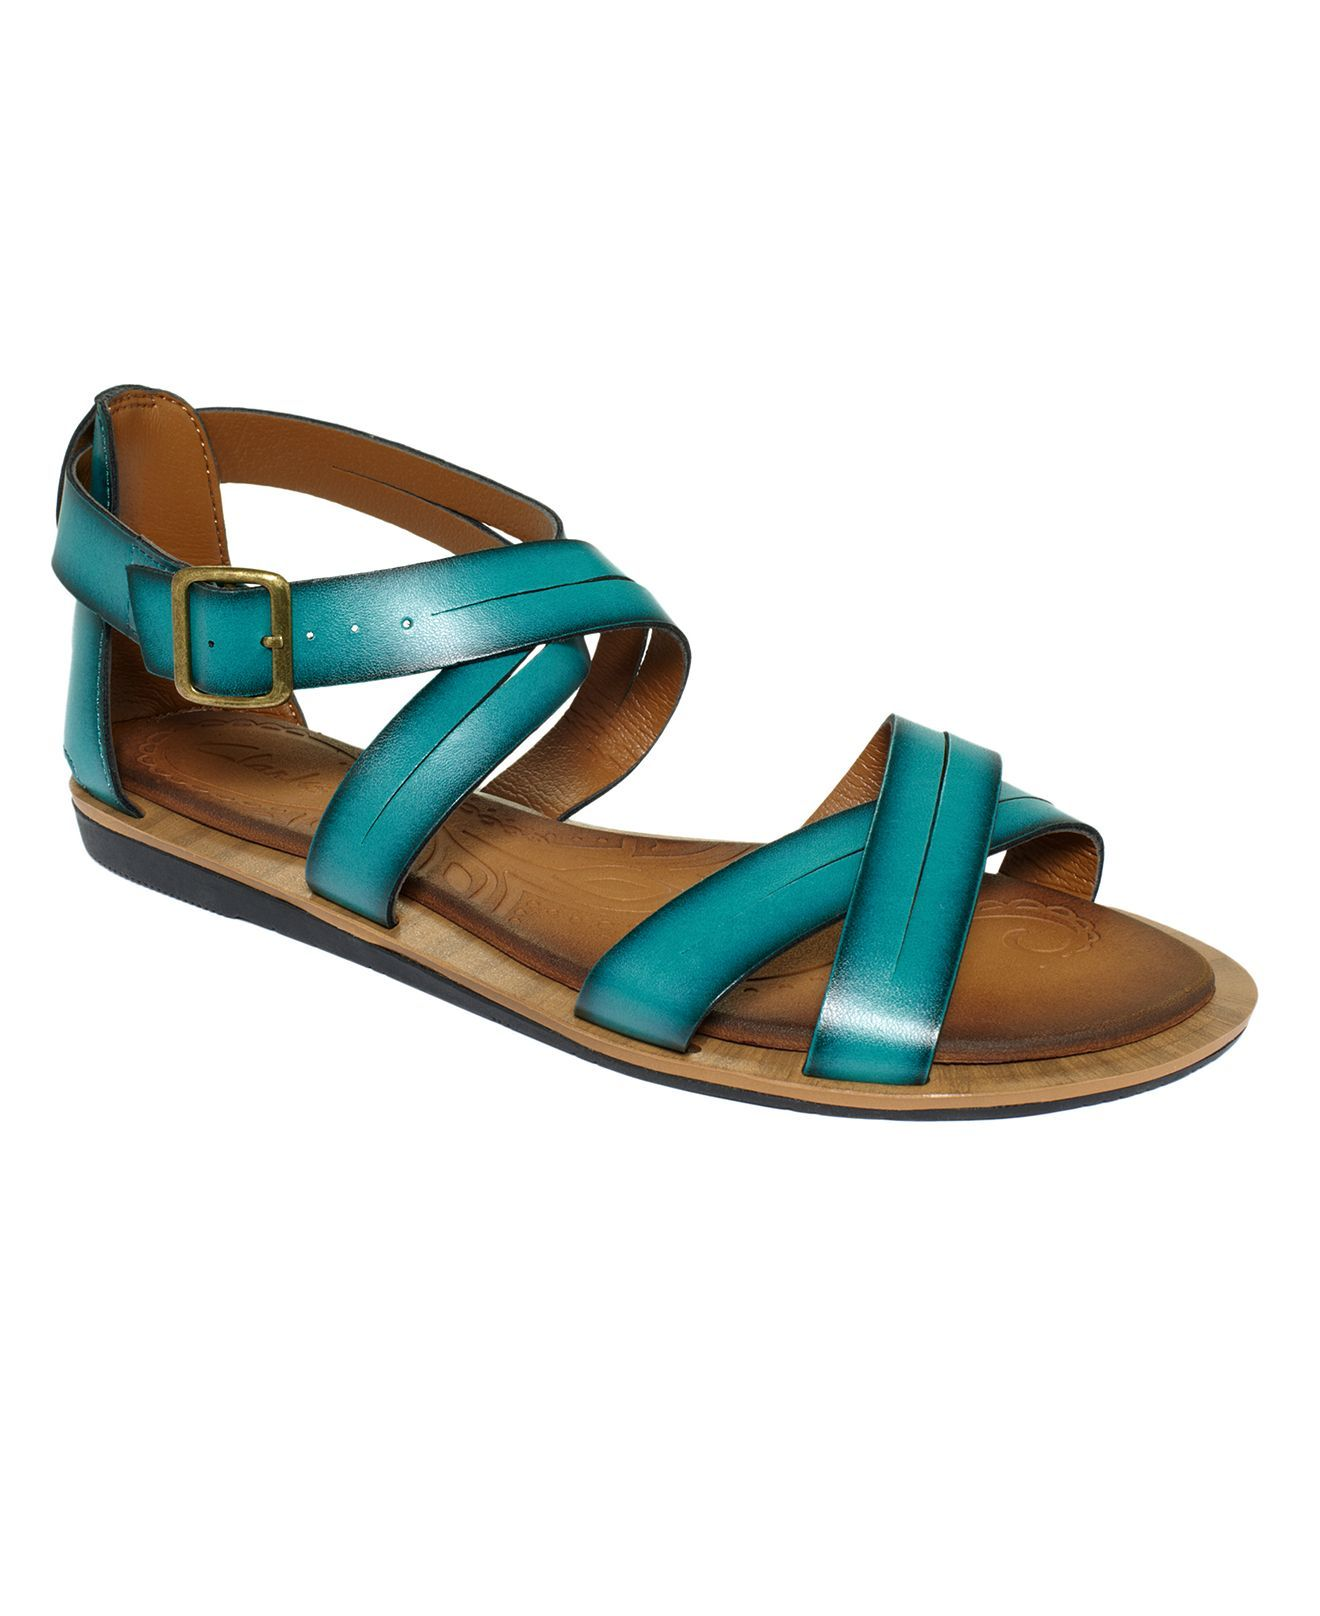 Clarks Women's Shoes, Billy Jazz Flat Sandals - Clarks - Shoes - Macy's